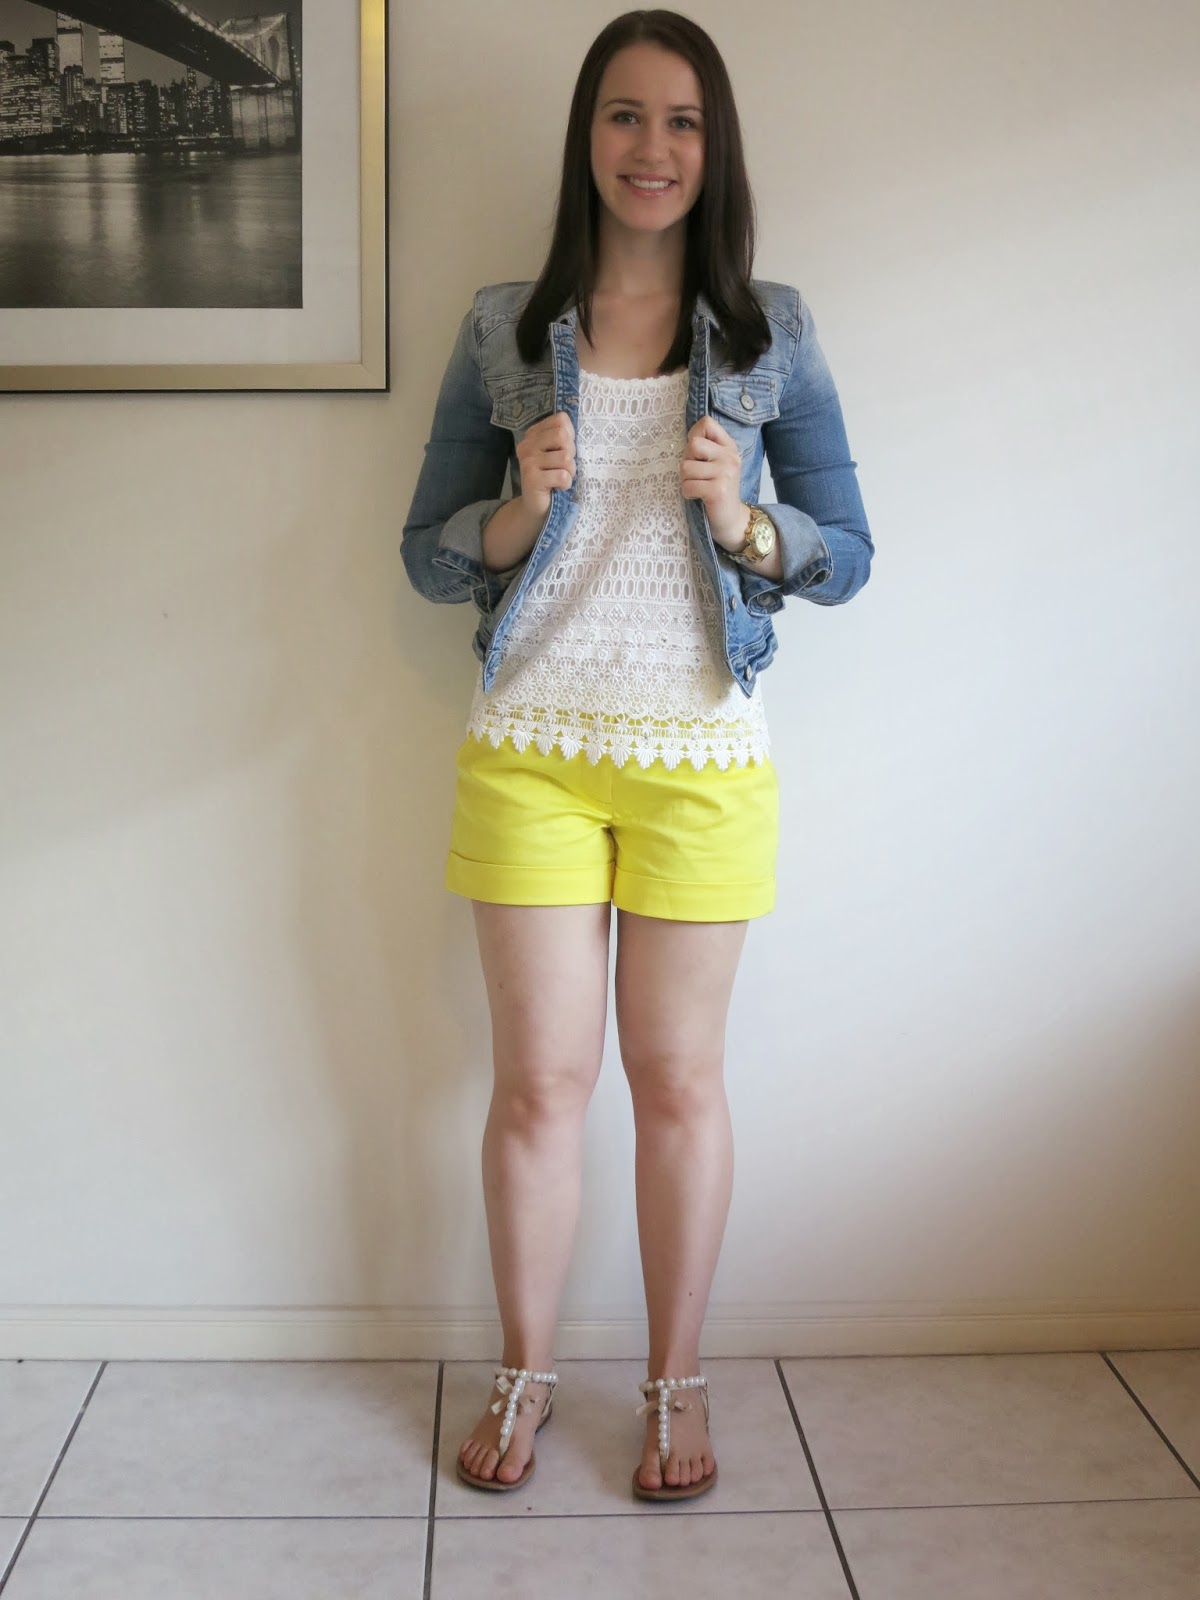 uni outfit, college outfit, petite girl outfit, yellow shorts, cream embellished tank, cream sandals, denim jacket, gold michael kors watch